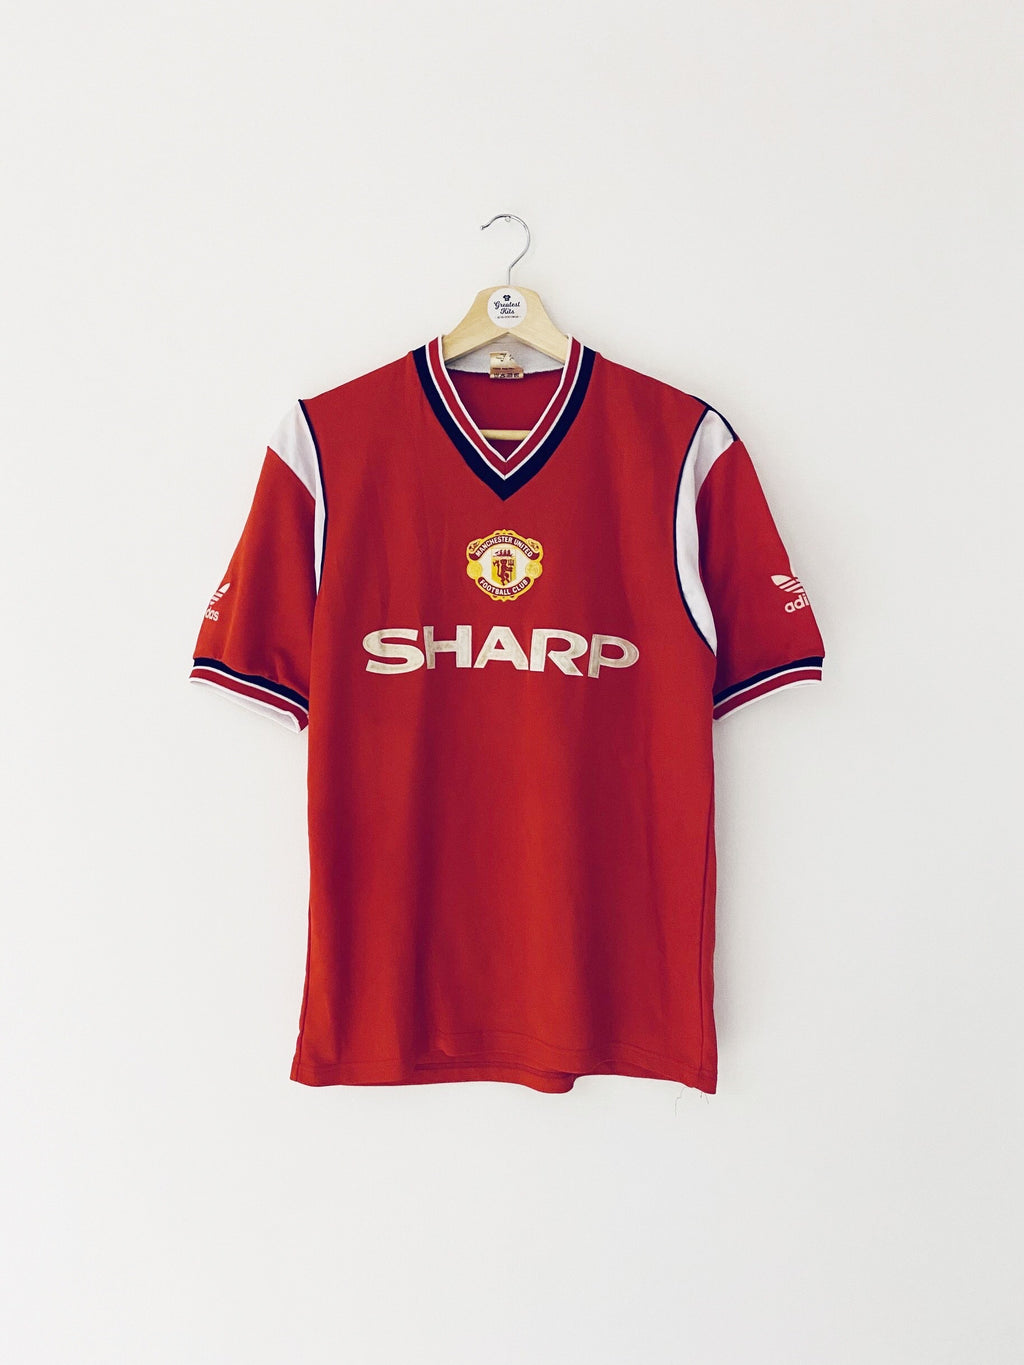 1984/86 Manchester United Home Shirt (L) 8/10